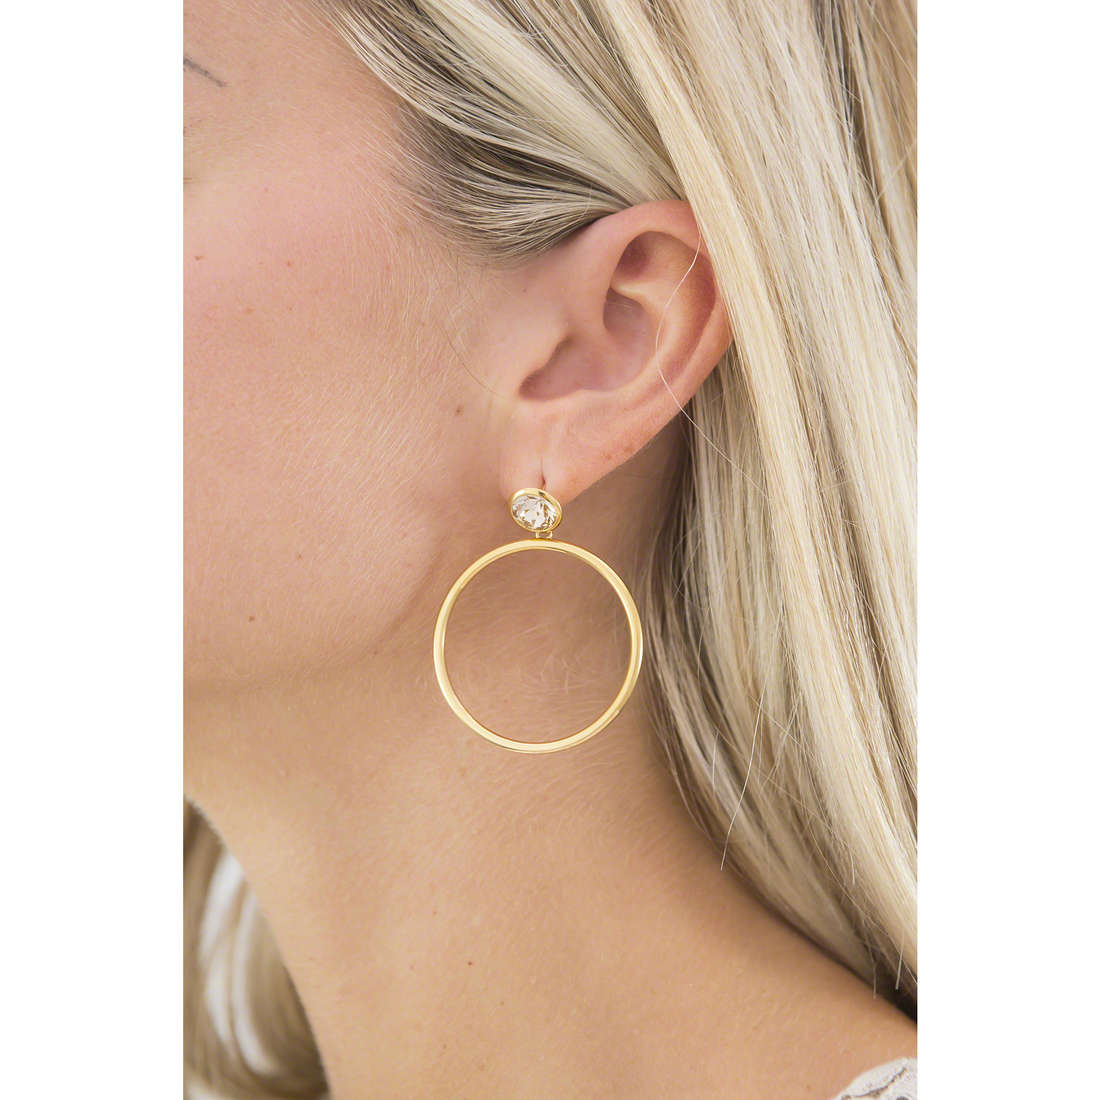 Brosway earrings E-Tring woman BRT30 photo wearing